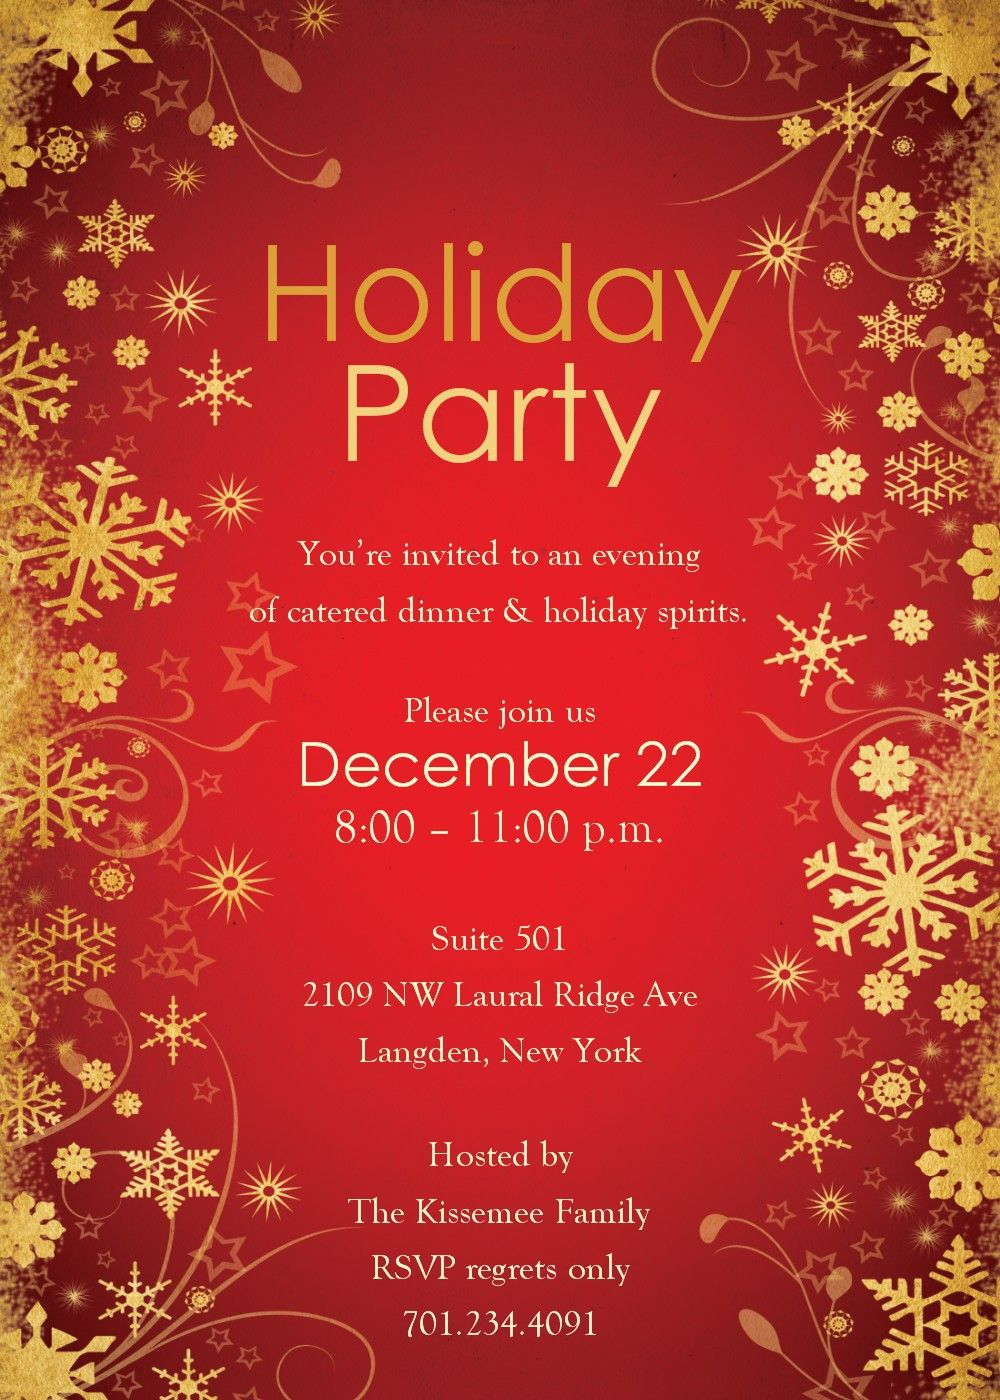 christmas party invitations templates word | cookie swap, Party invitations